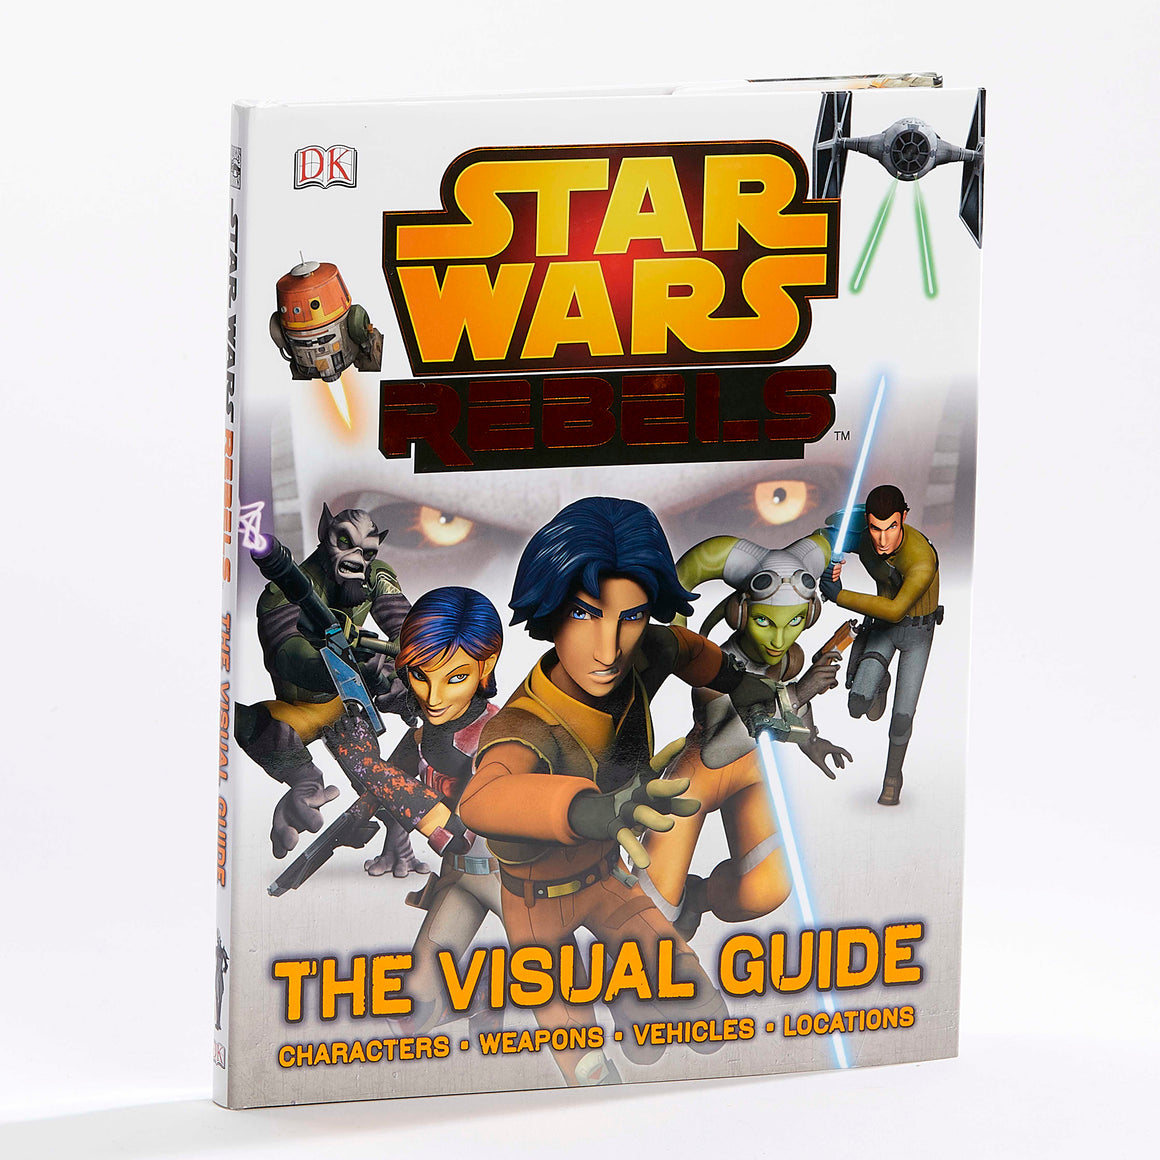 Star Wars, the Visual Guide